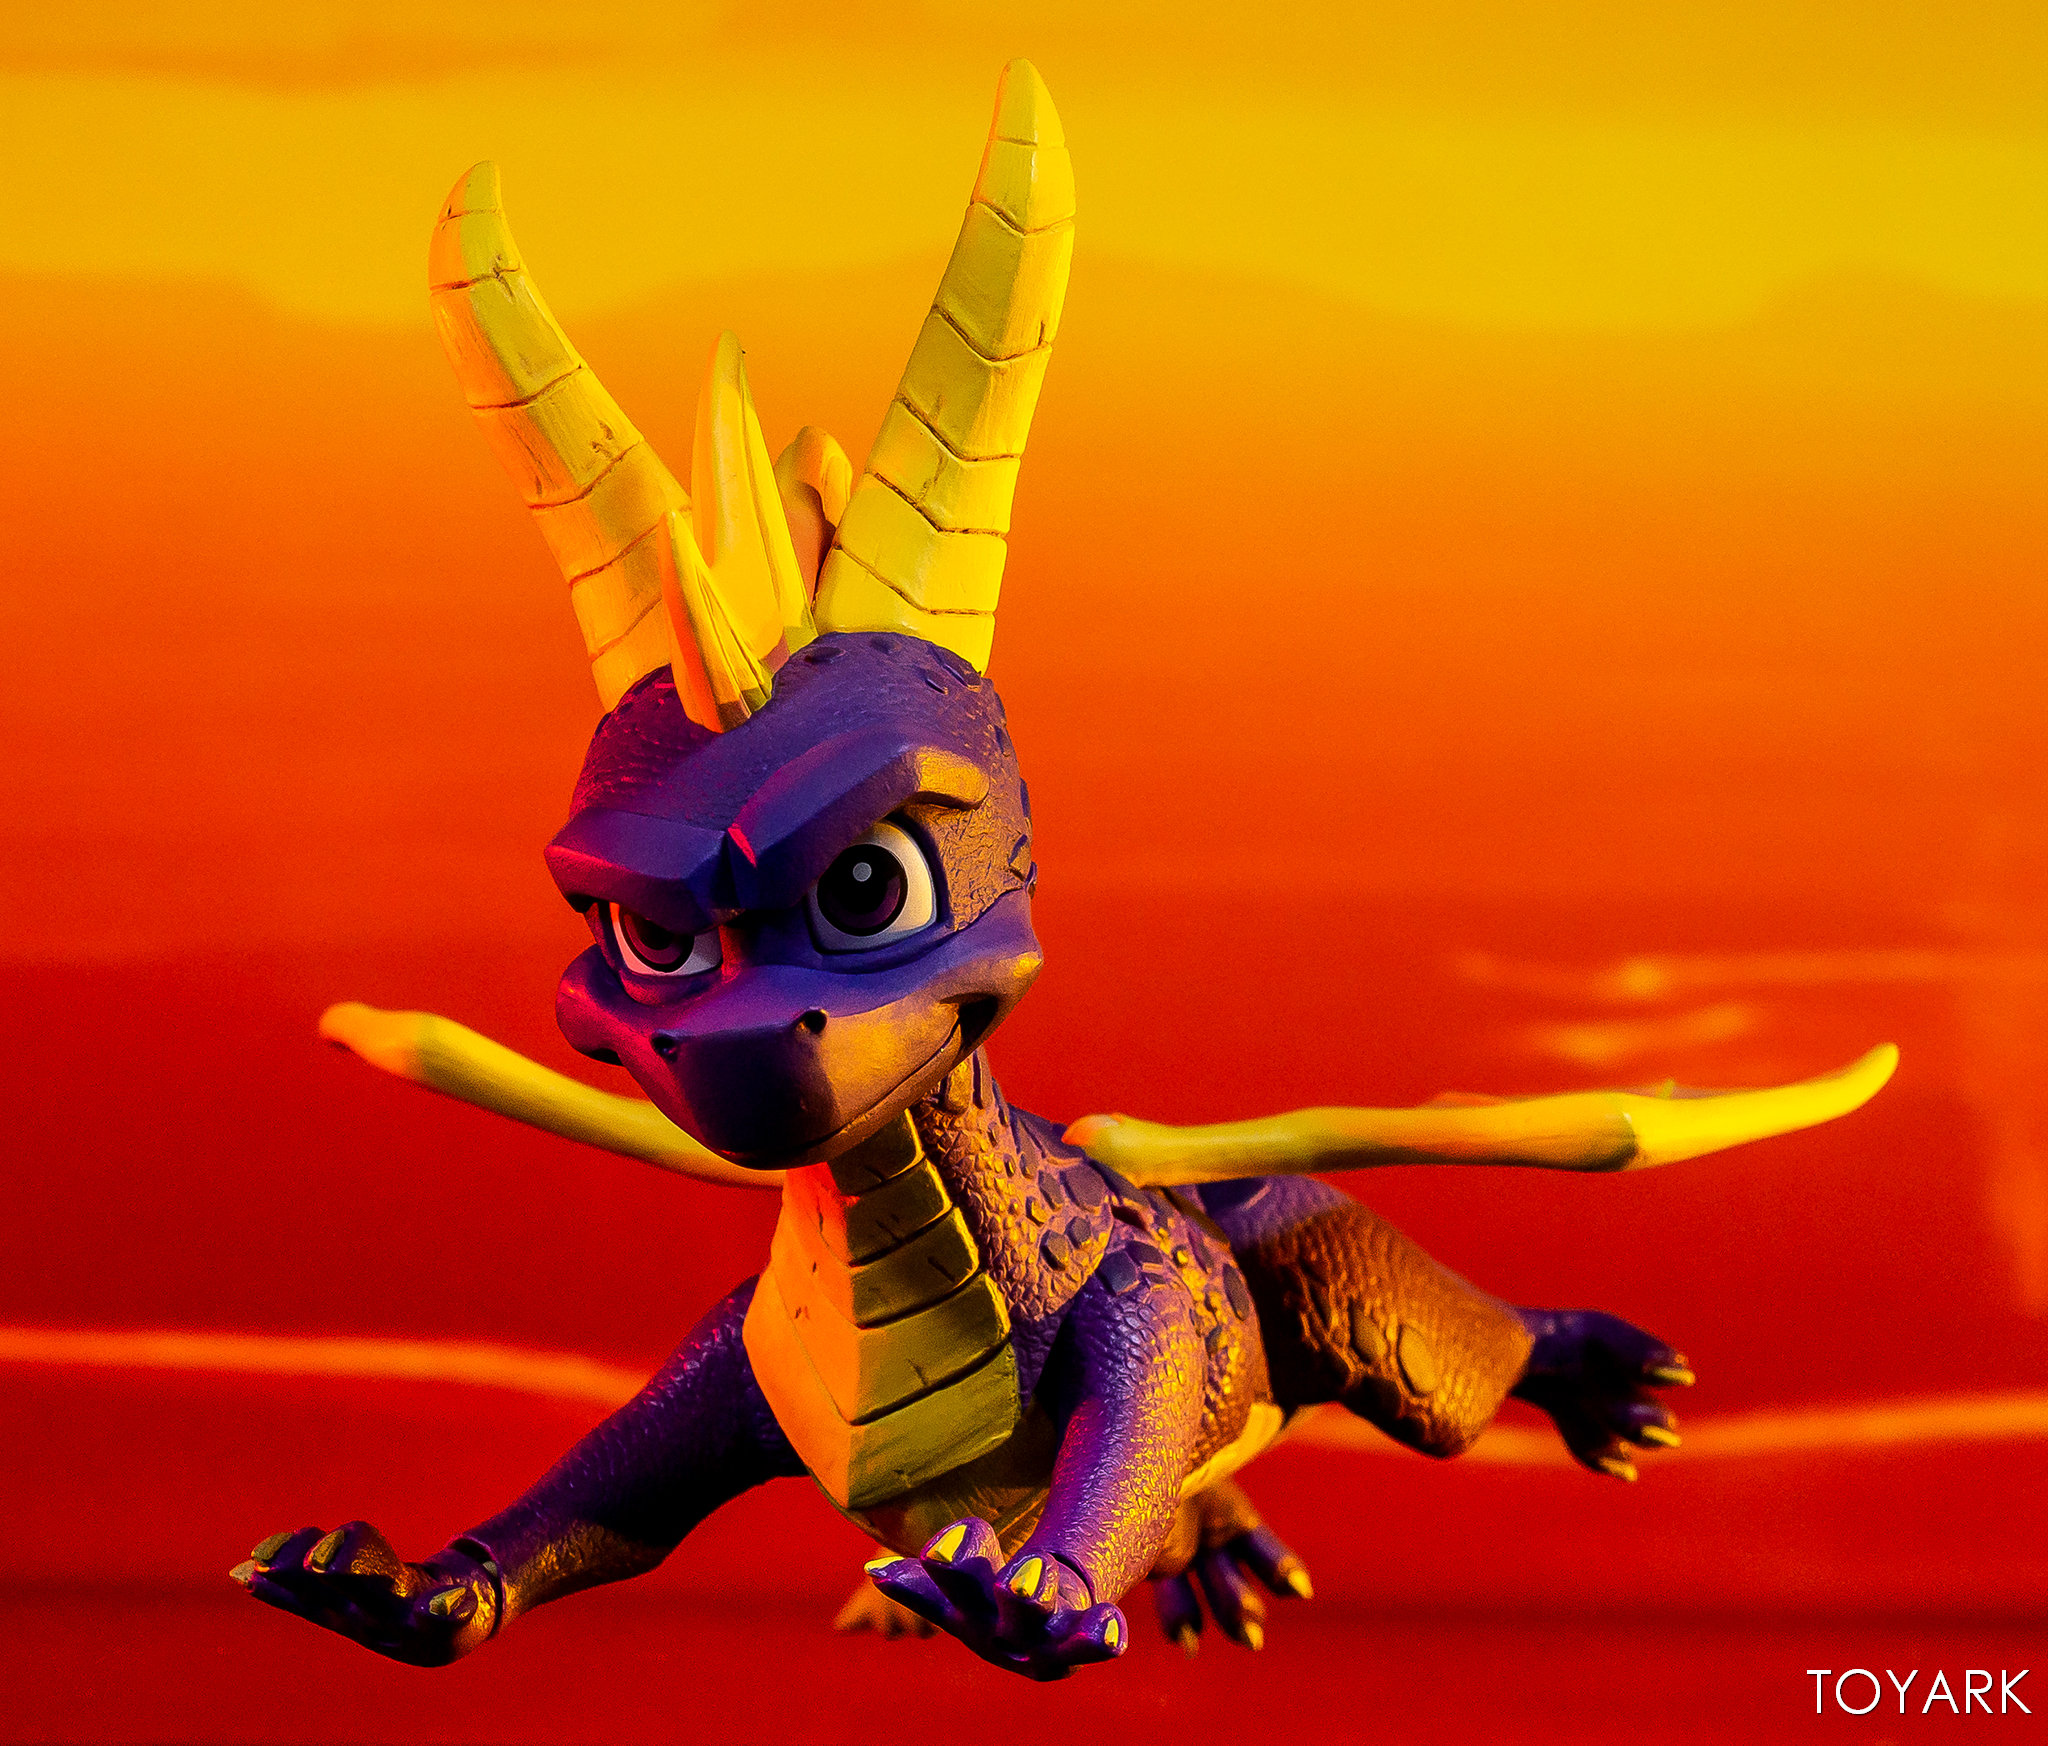 https://news.toyark.com/wp-content/uploads/sites/4/2019/03/NECA-Spyro-The-Dragon-Figure-021.jpg